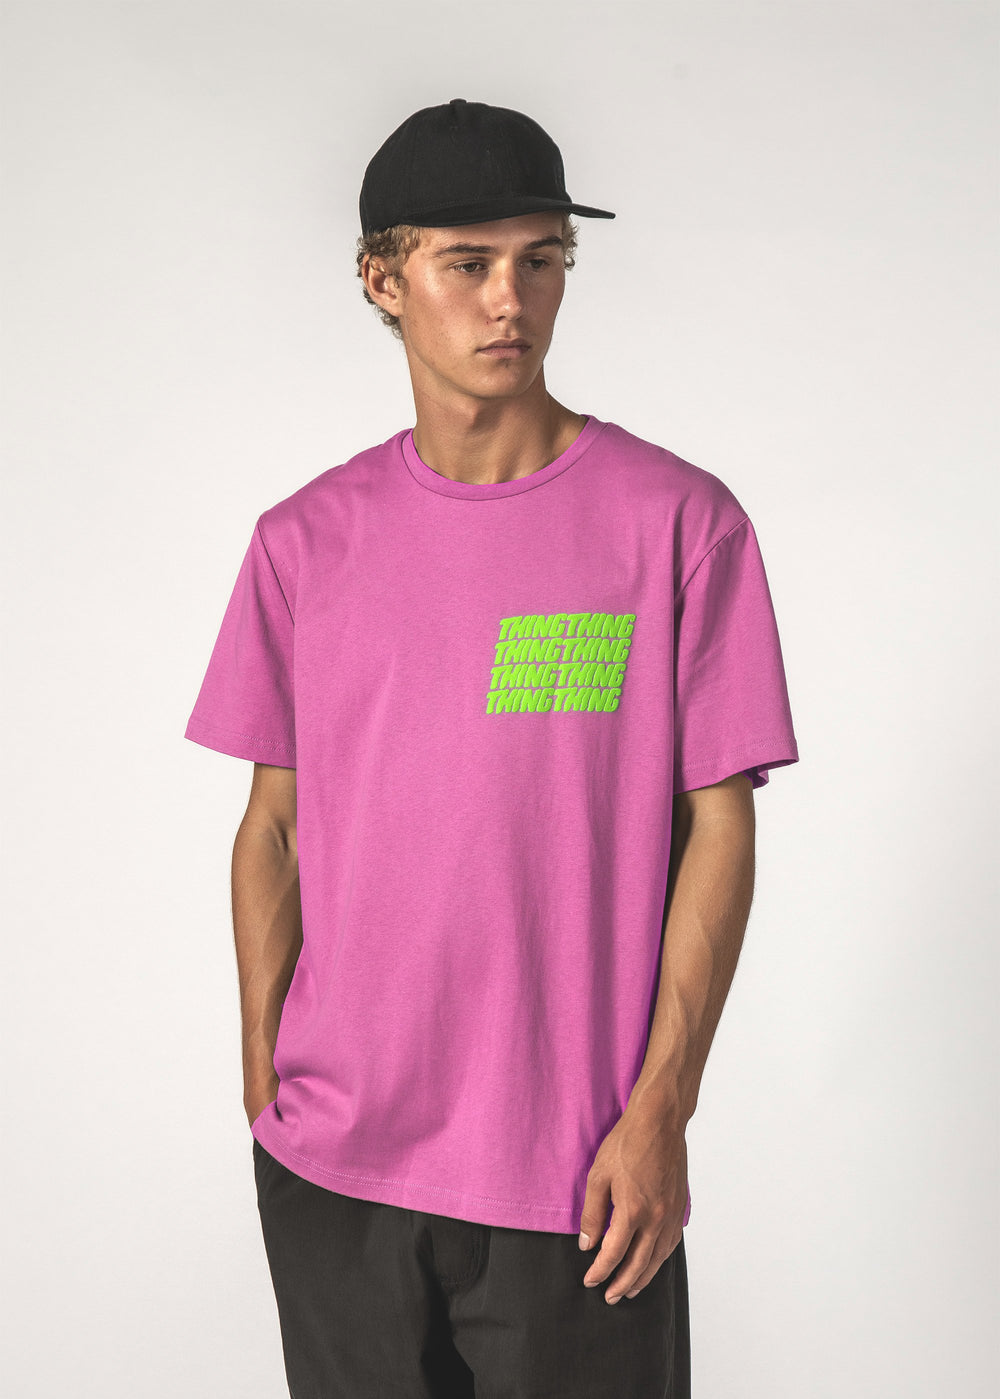 STACKER SS TEE - Magenta Stacker